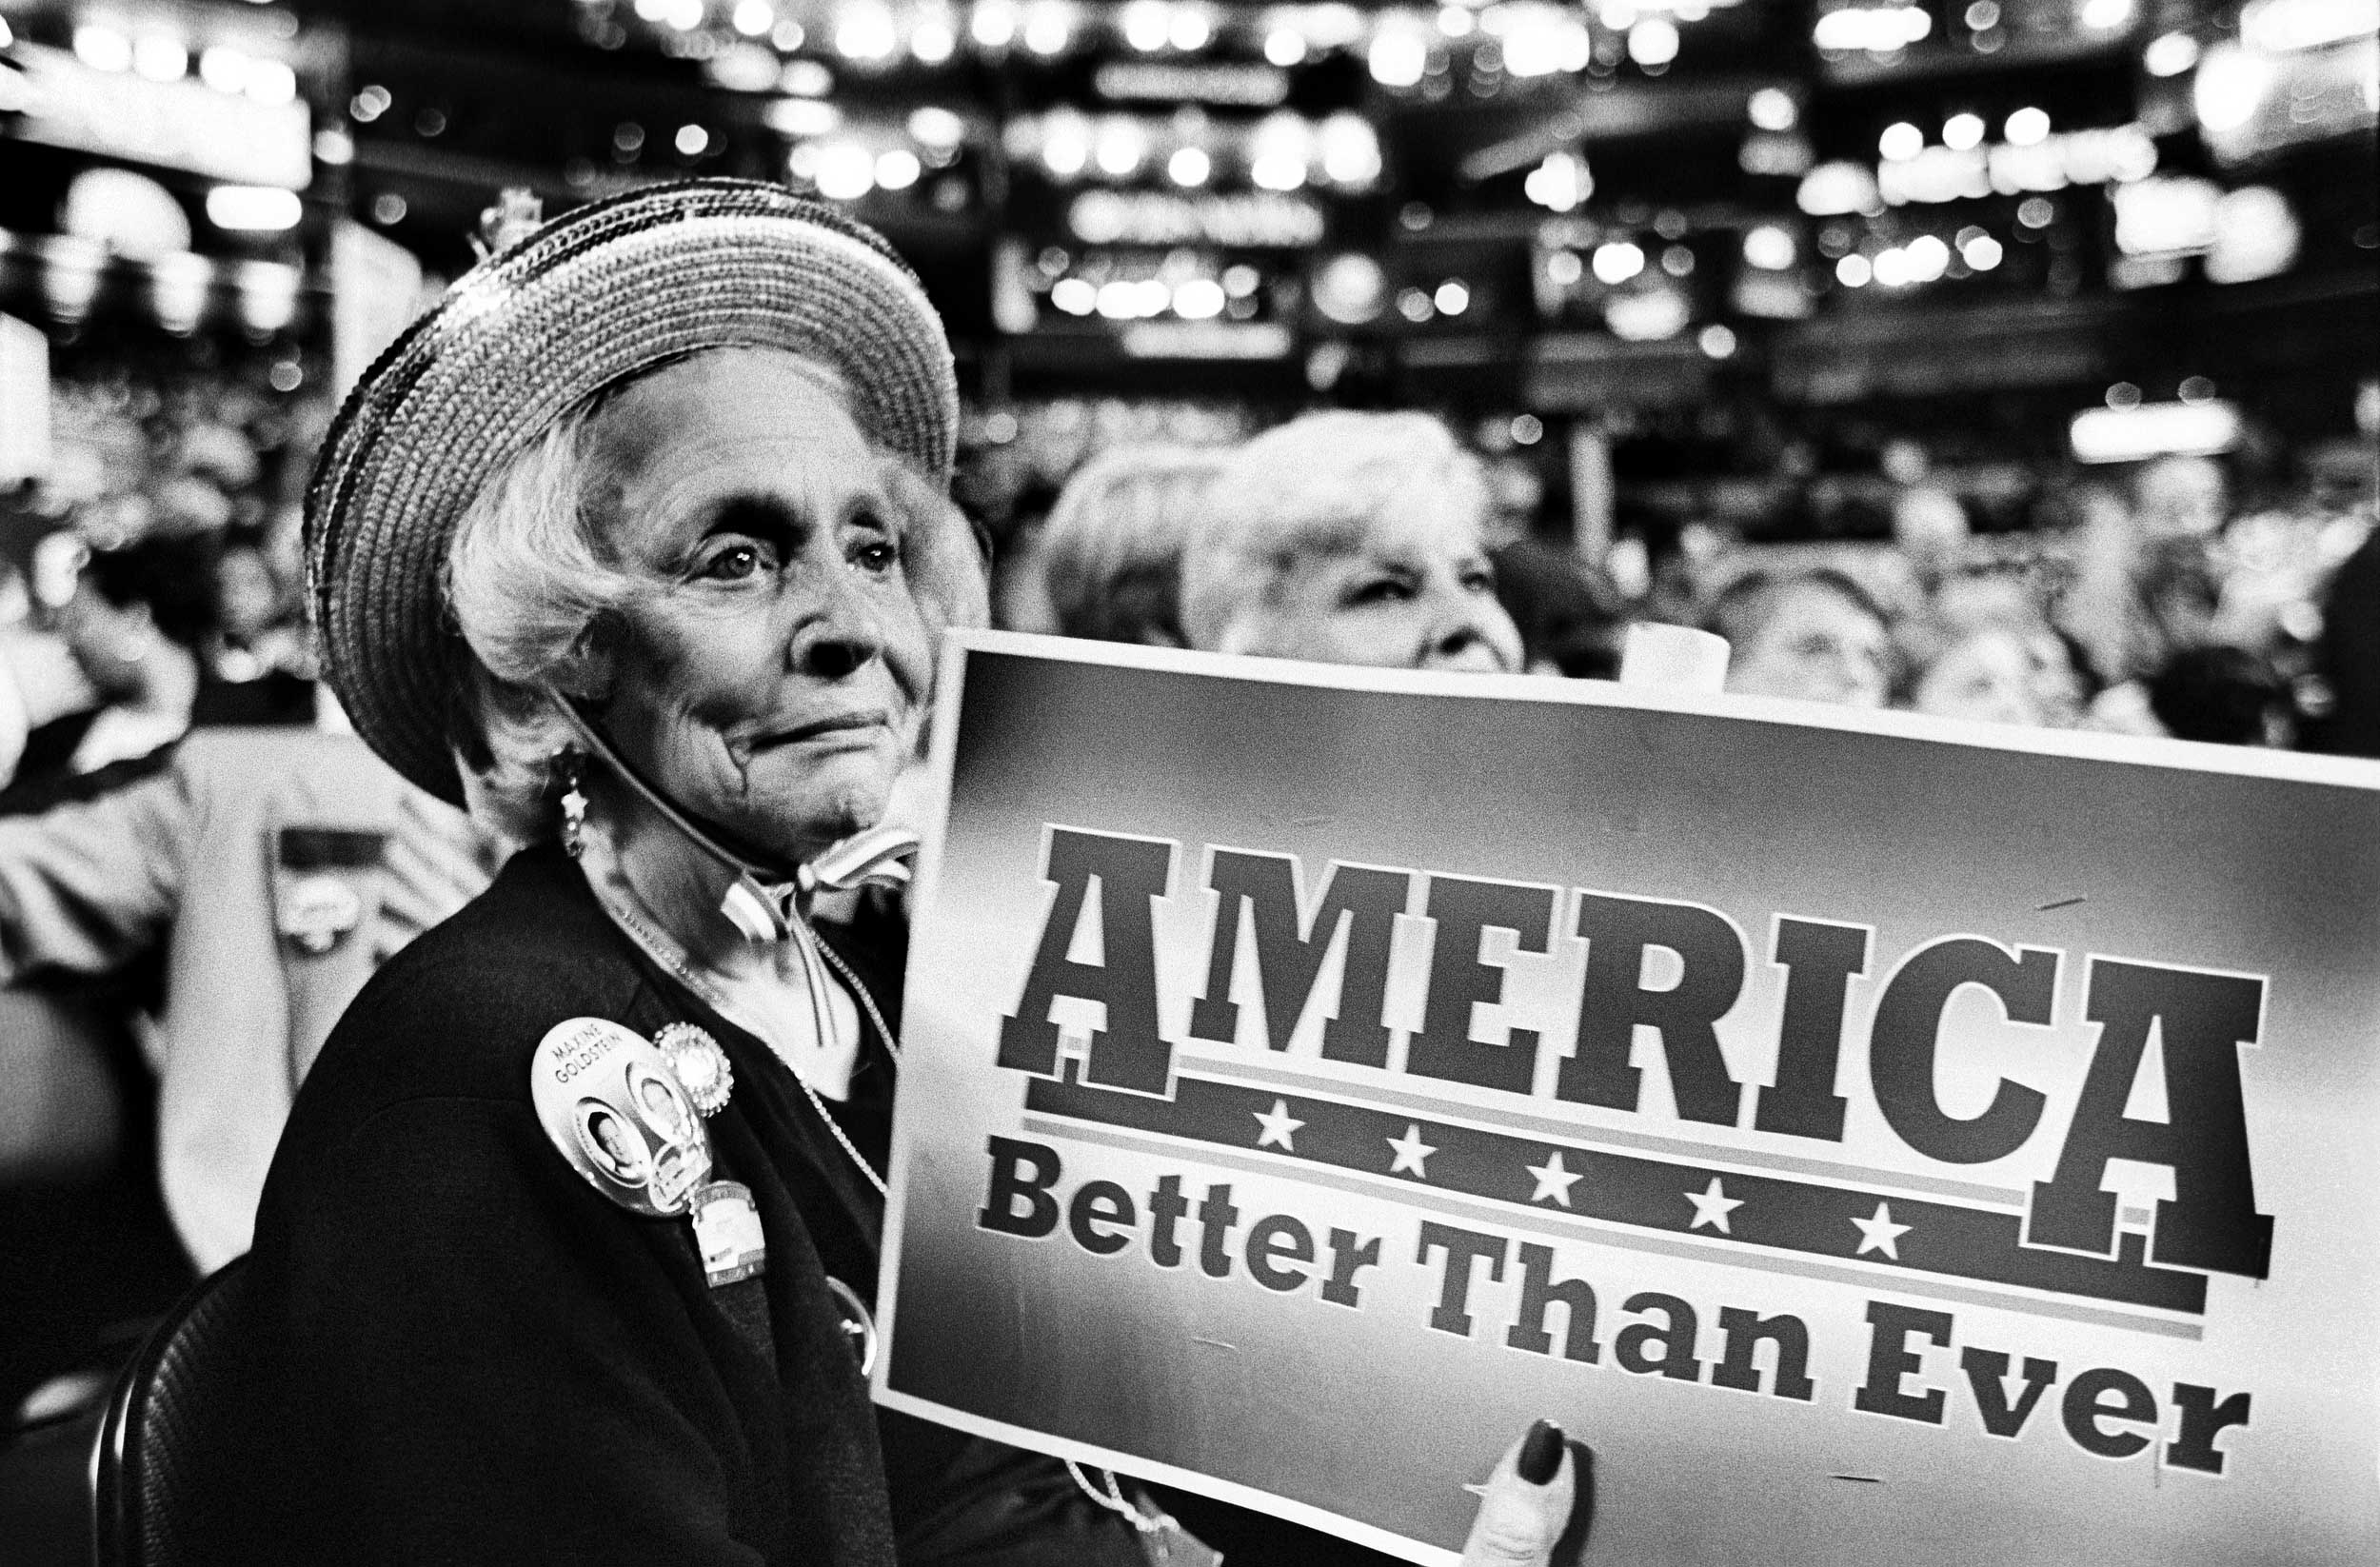 A senior delegate at the 2000 Democratic National Convention.